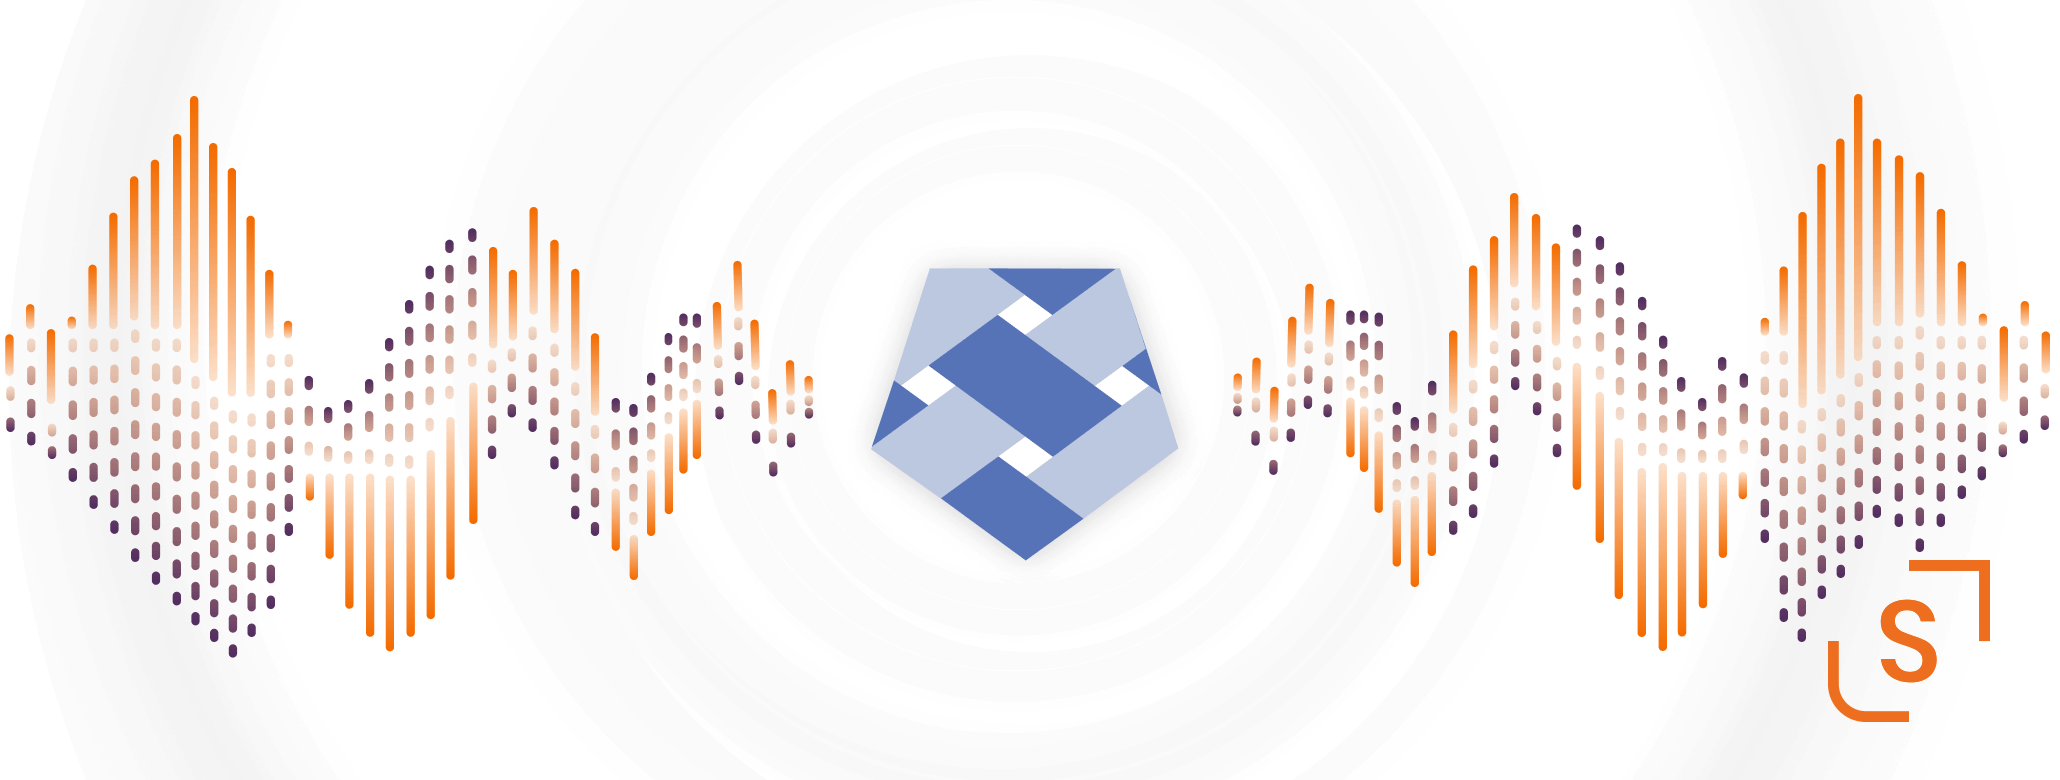 Mastering cross-platform voice development with Jovo